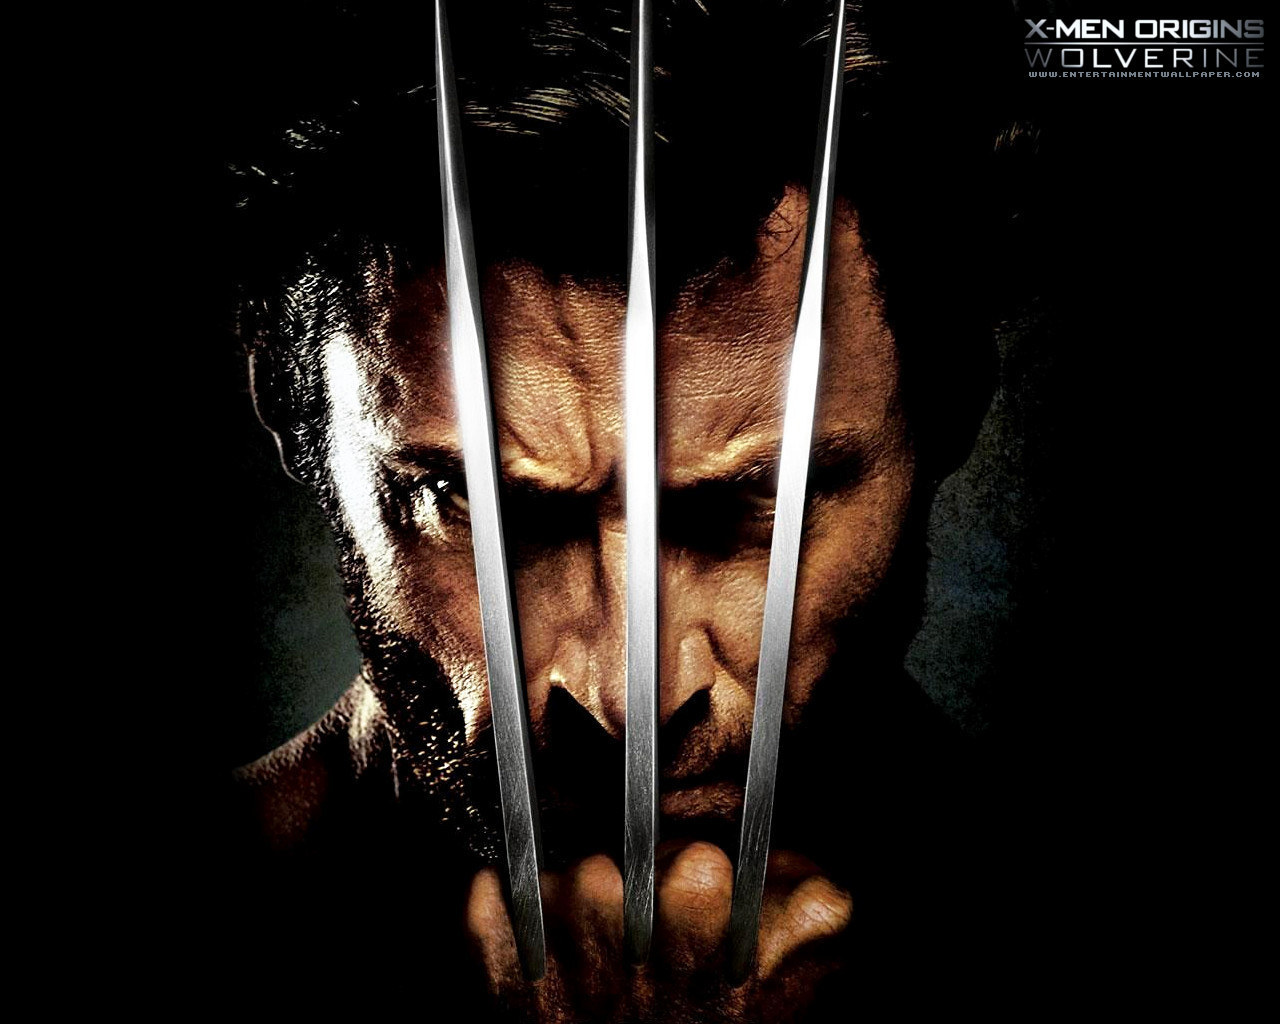 X Men THE MOVIE Images Wolverine HD Wallpaper And Background Photos